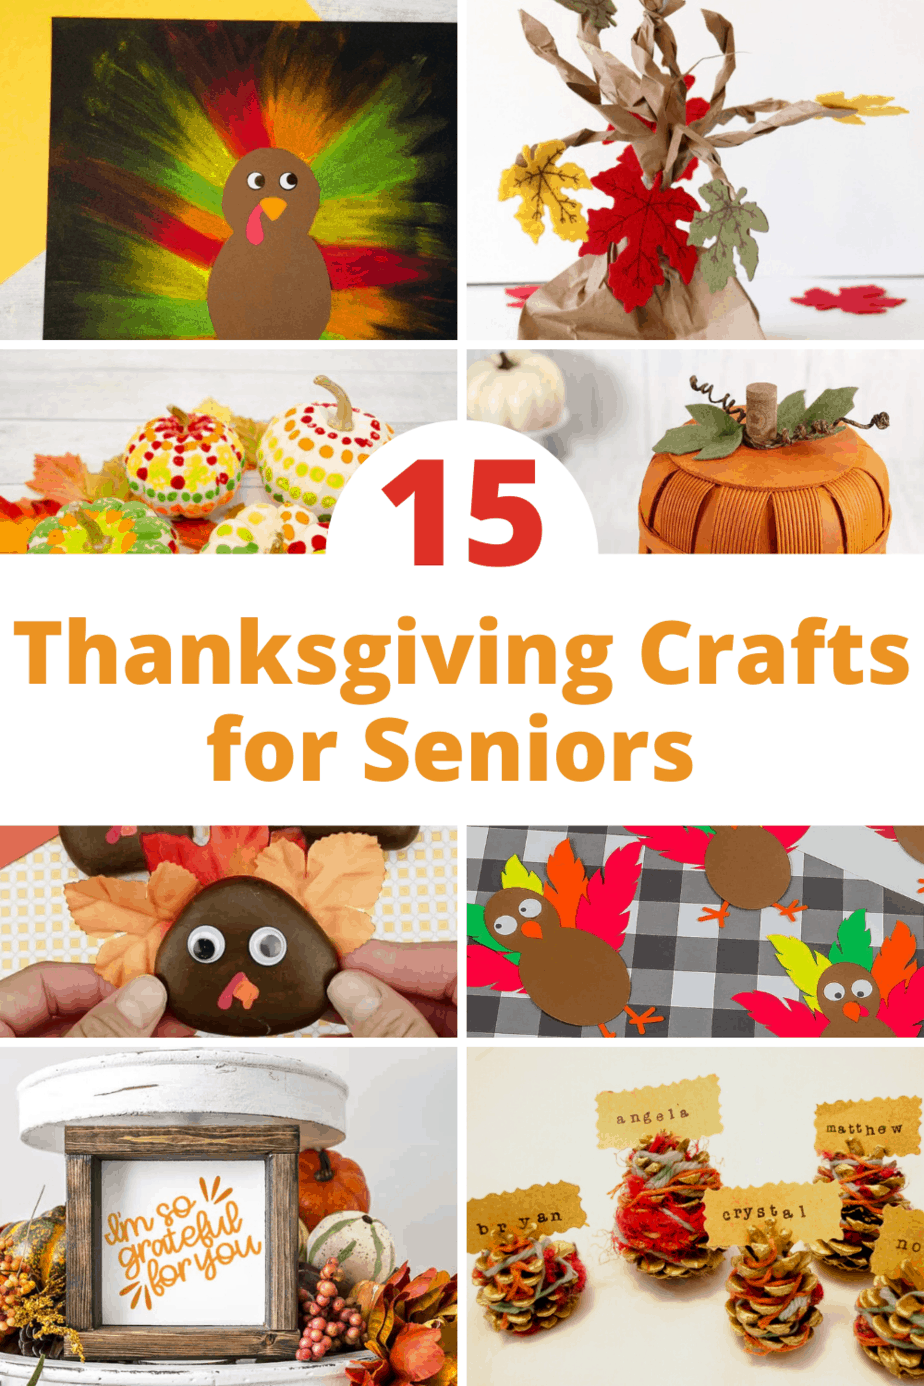 15 cute Thanksgiving Crafts for Seniors